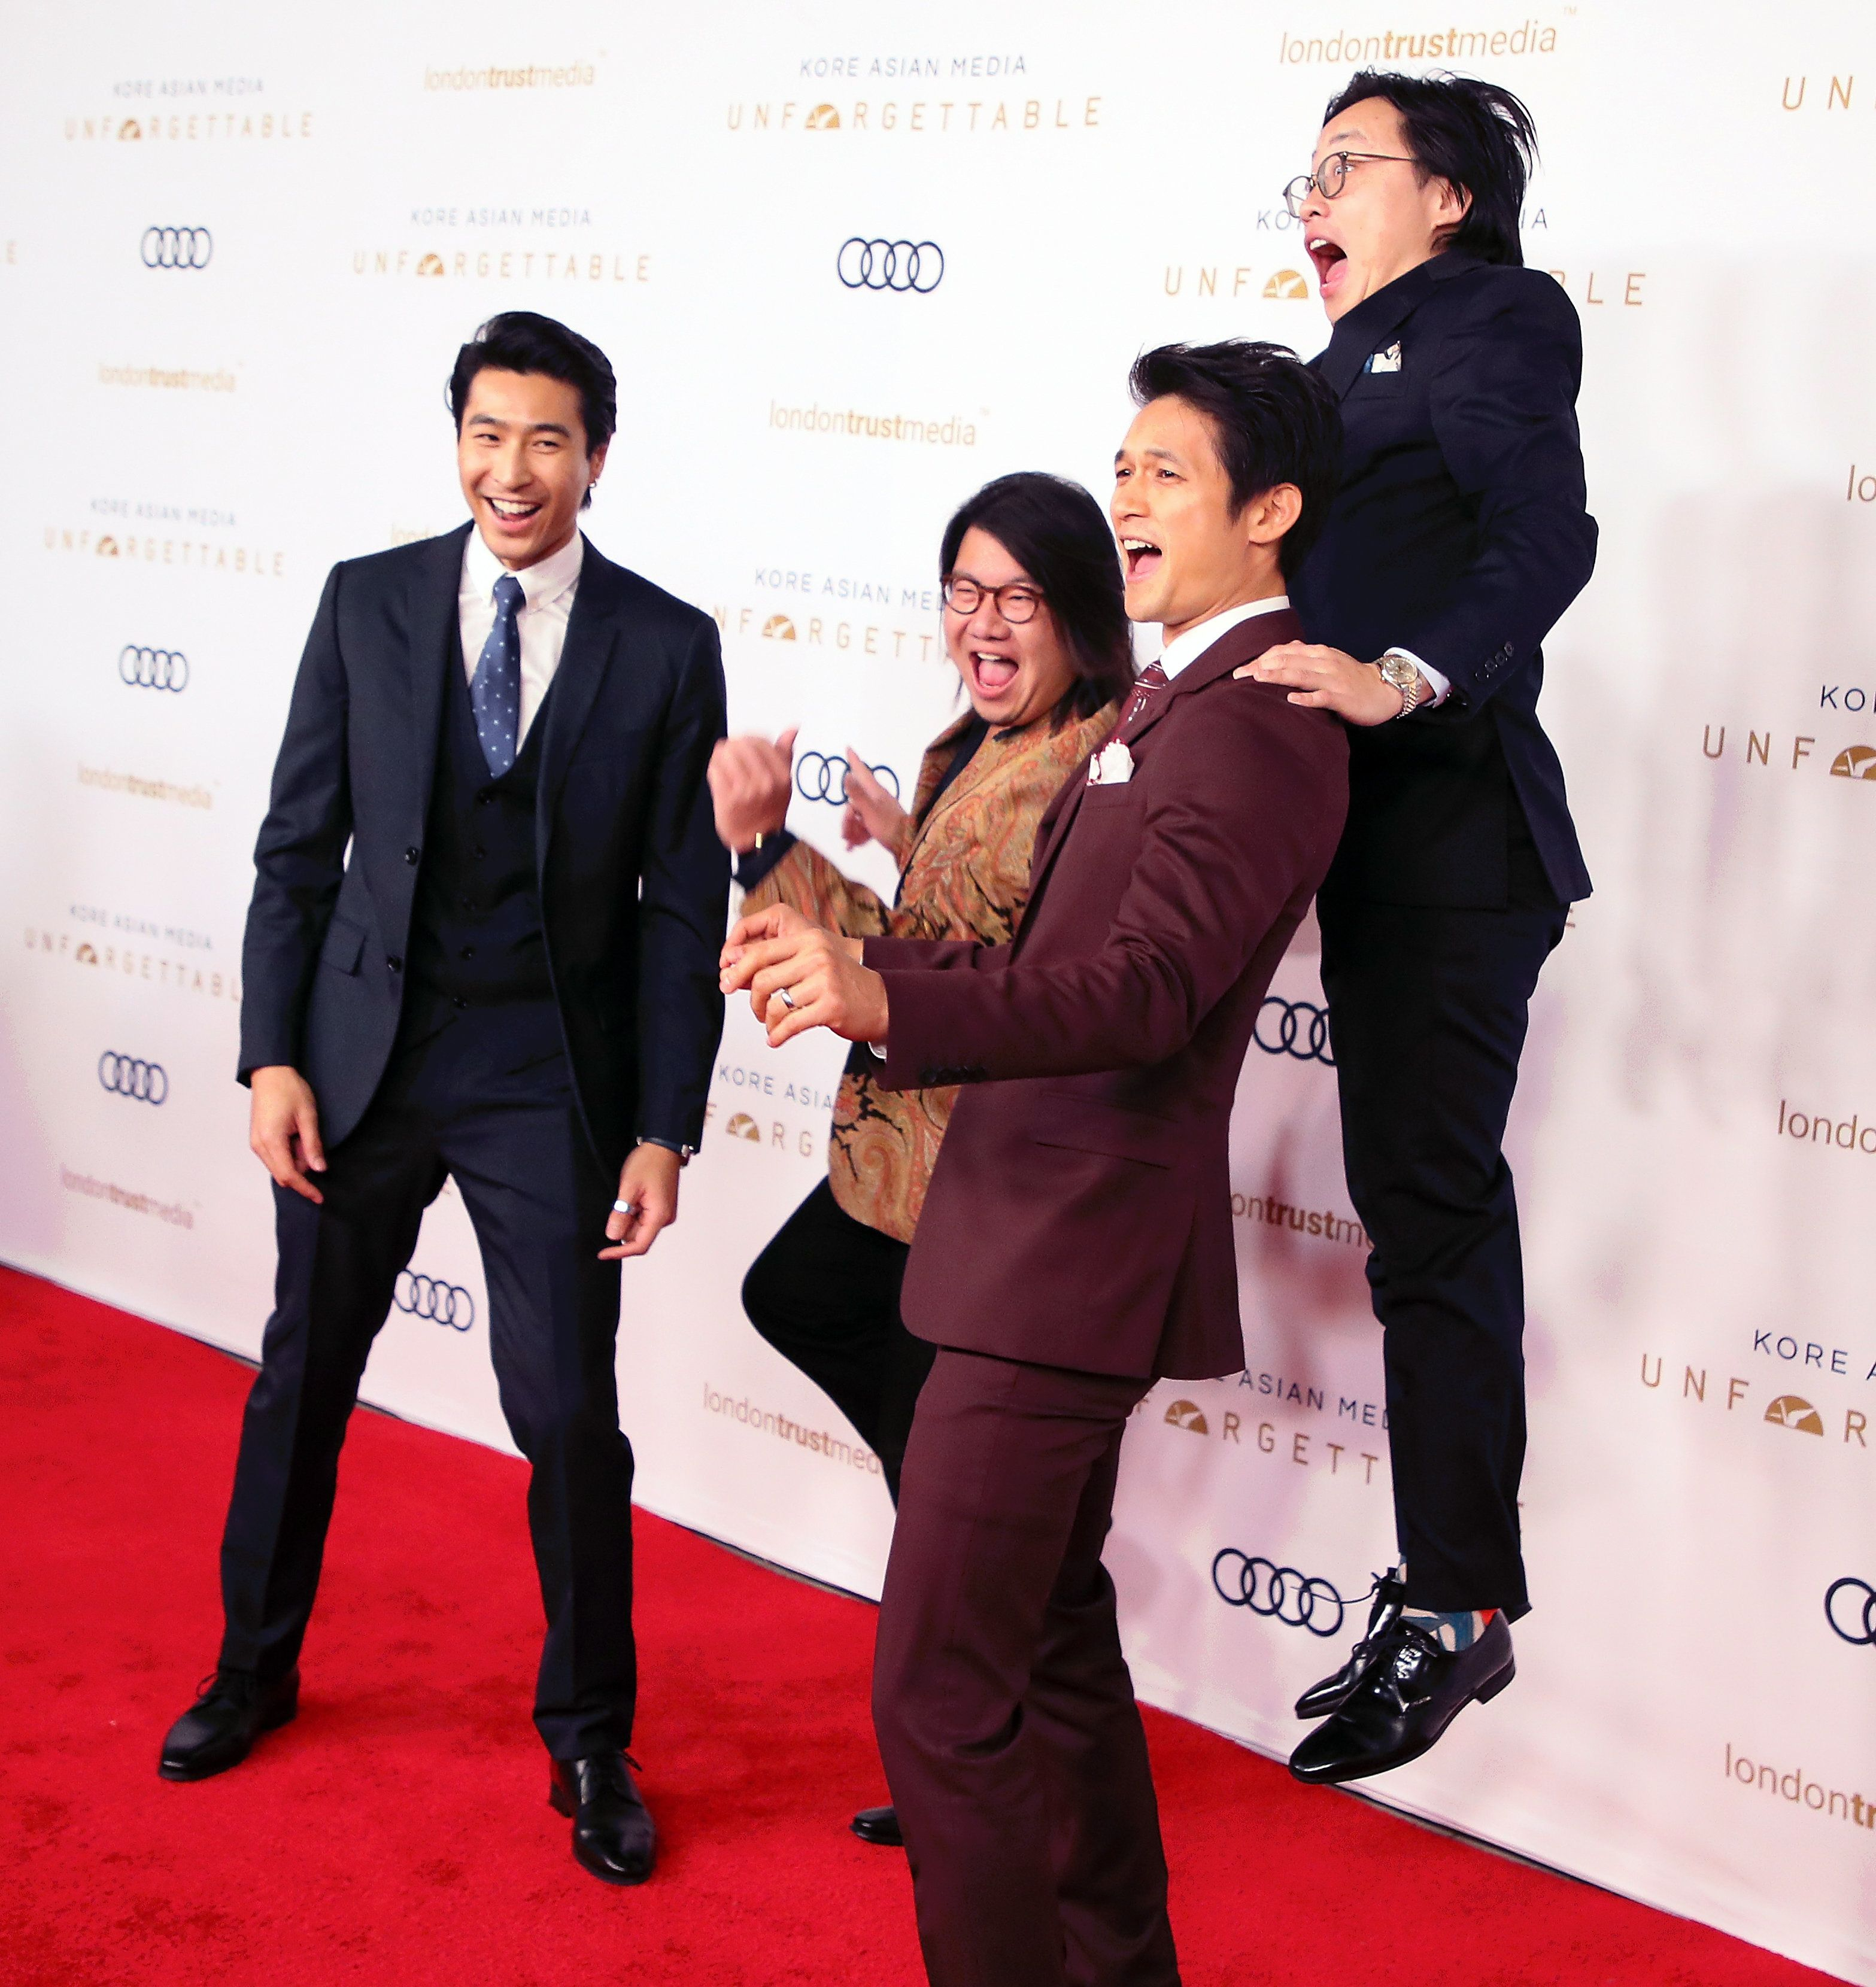 BEVERLY HILLS, CALIFORNIA - DECEMBER 08: (L-R) Chris Pang, Kevin Kwan, Harry Shum Jr. and Jimmy O. Yang attend the Unforgettable Gala 2018 at The Beverly Hilton Hotel on December 08, 2018 in Beverly Hills, California. (Photo by David Livingston/Getty Images)